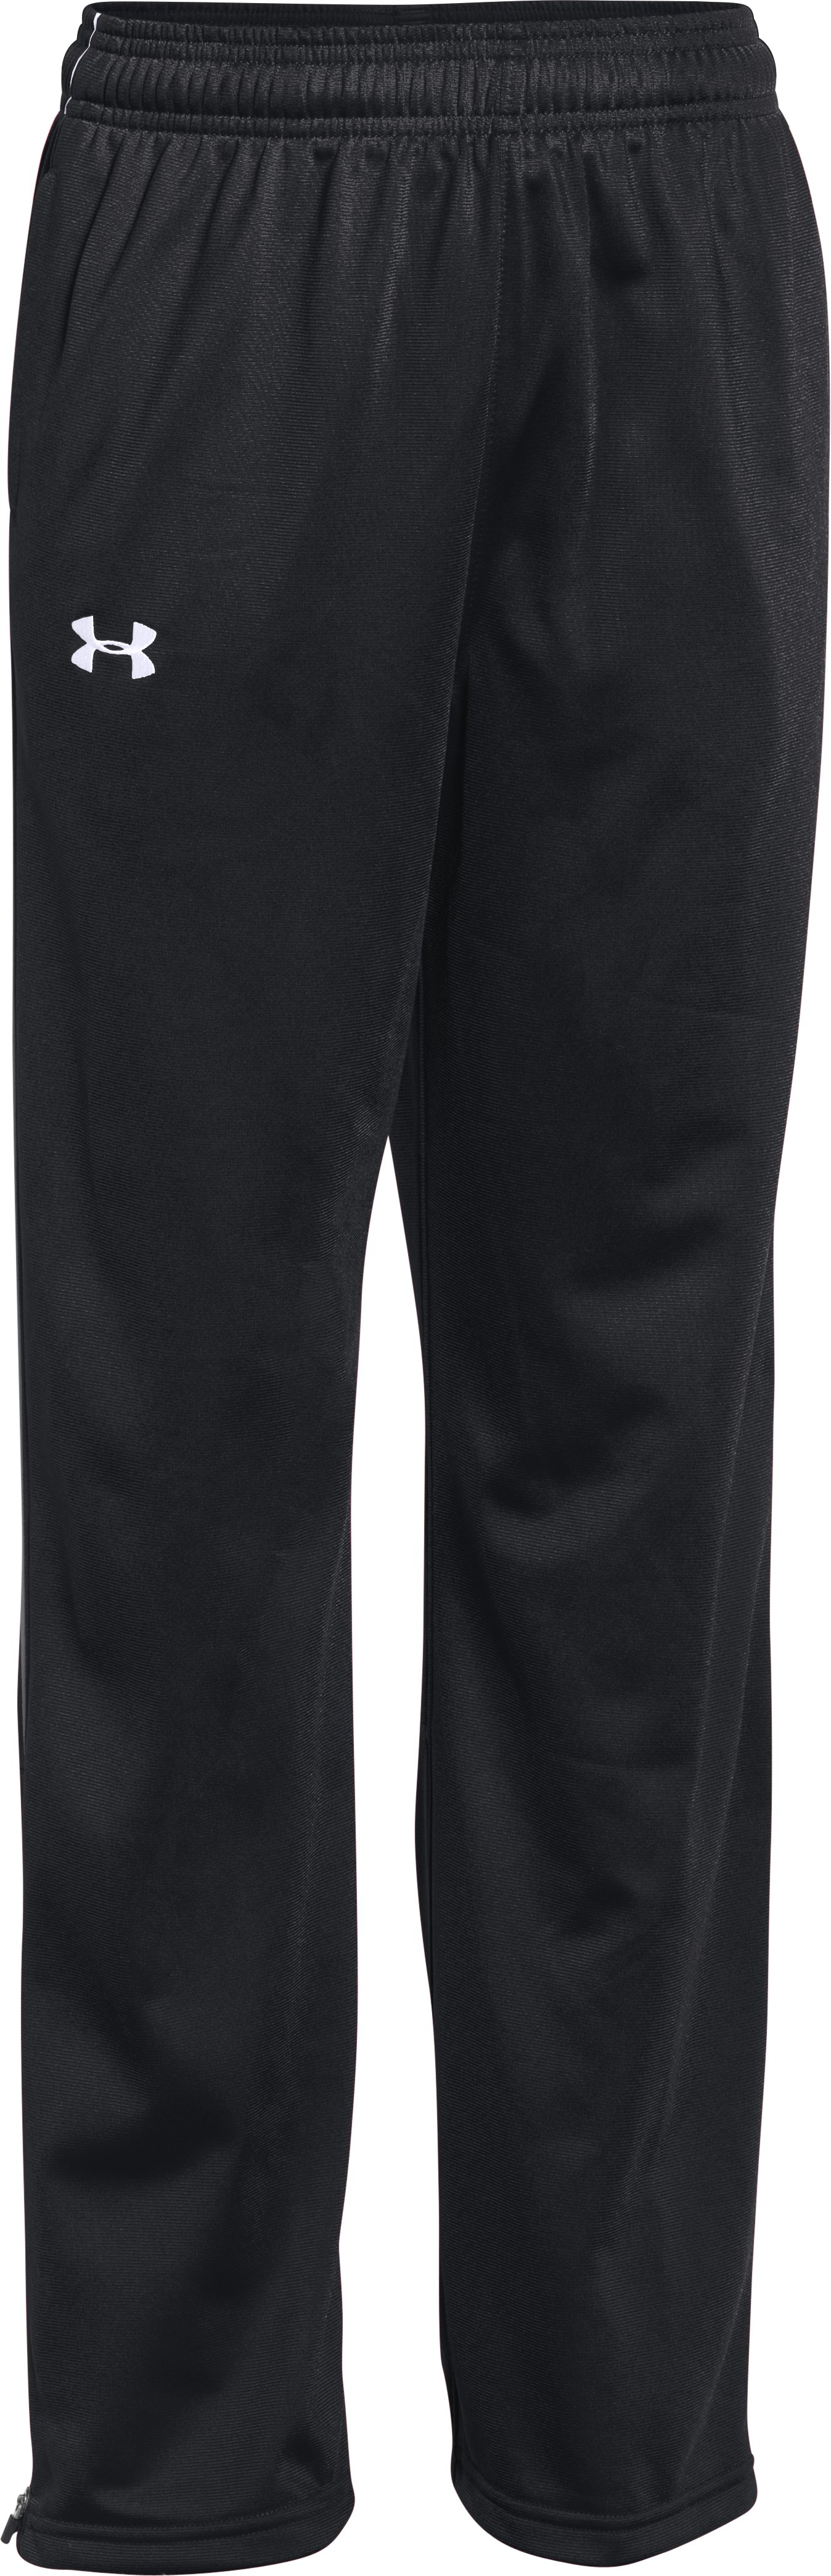 Boys' UA Rival Knit Warm Up Pants, Black , undefined